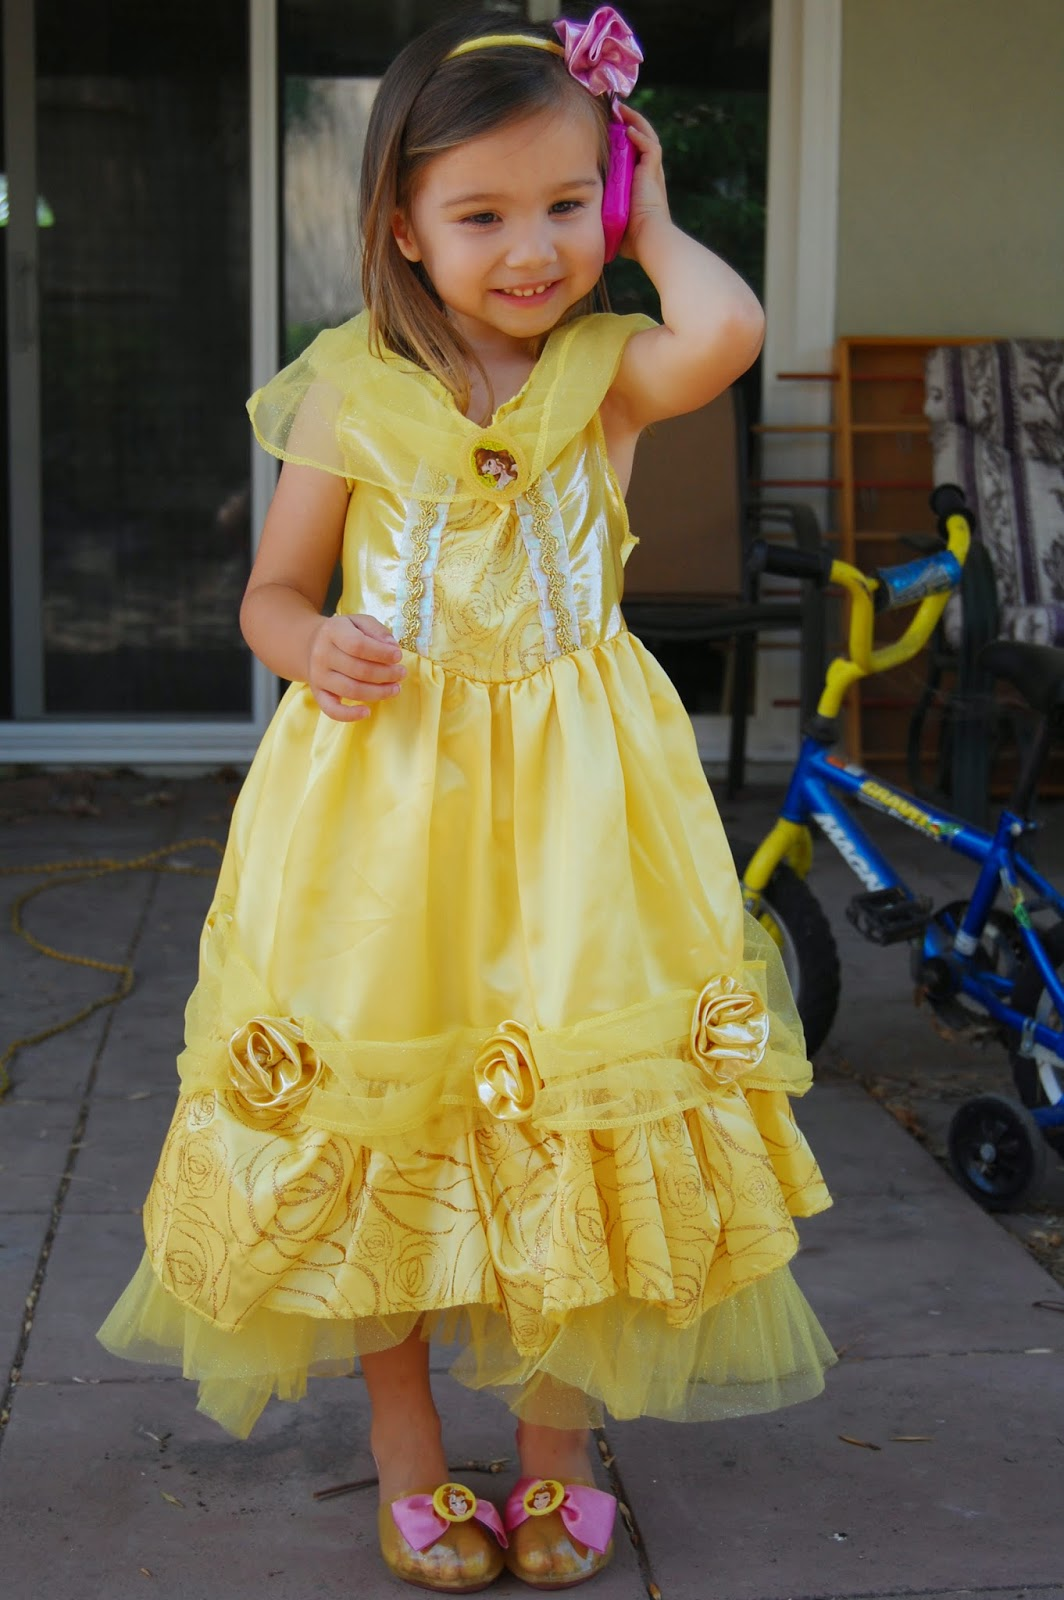 Sheu0027s talking on her princess phone because thatu0027s what they do you know. She puts the costume on then pretends to be Belle and calls her other princess ...  sc 1 st  Mama Sparkles & Mama Sparkles: Princess Pinga - Disney Princess Costumes Review